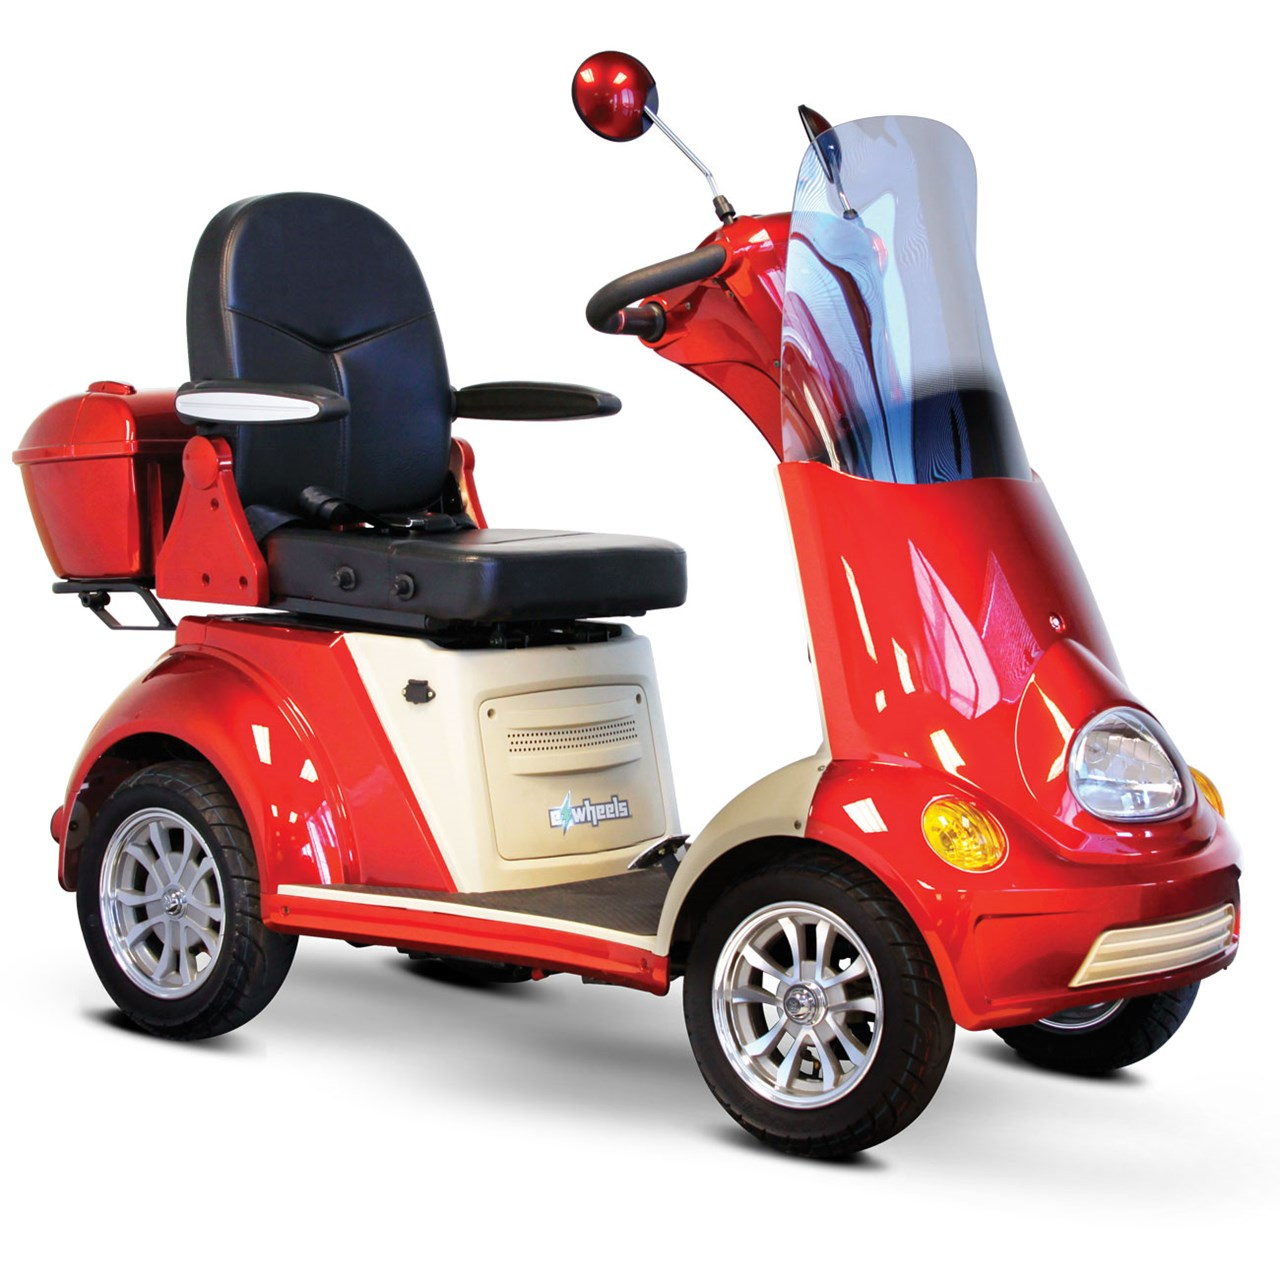 EWheels EW-52 Powerful Four-Wheel Luxury Scooter